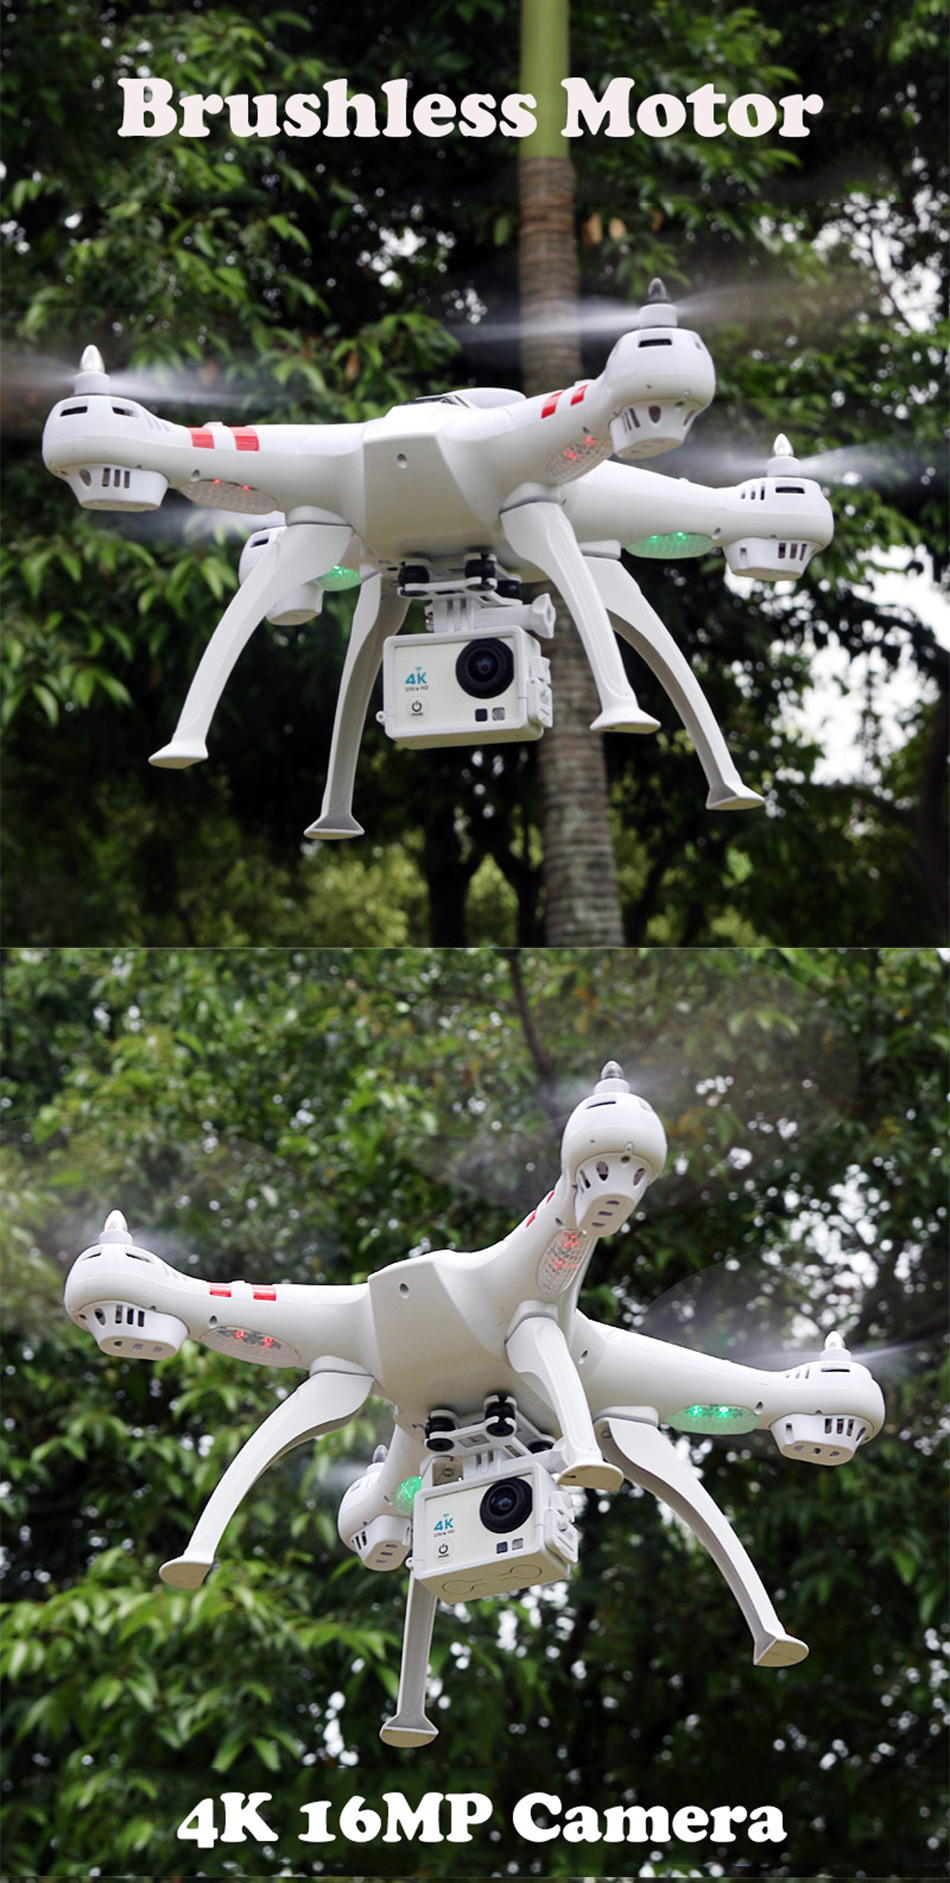 X16 rc drones with camera hd dron GPS height 500 meters fly distance Fpv quadcopter rc helicopter Brushless Motor 4K 1600W Toys 3